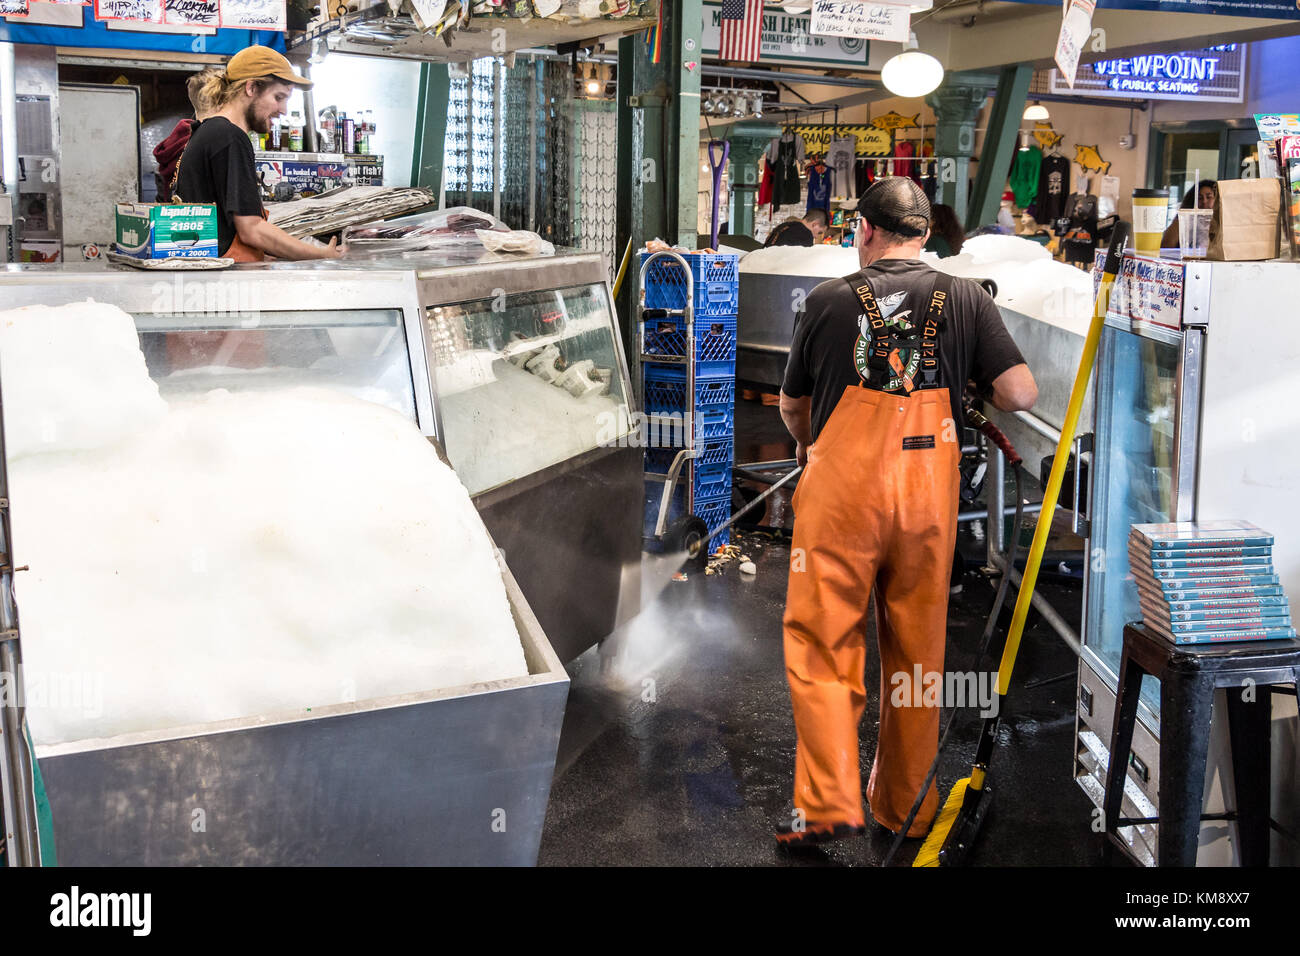 Seattle, Washington, USA - September 4th, 2017: Male worker wearing a waterproof fishing pants is cleaning the floor - Stock Image